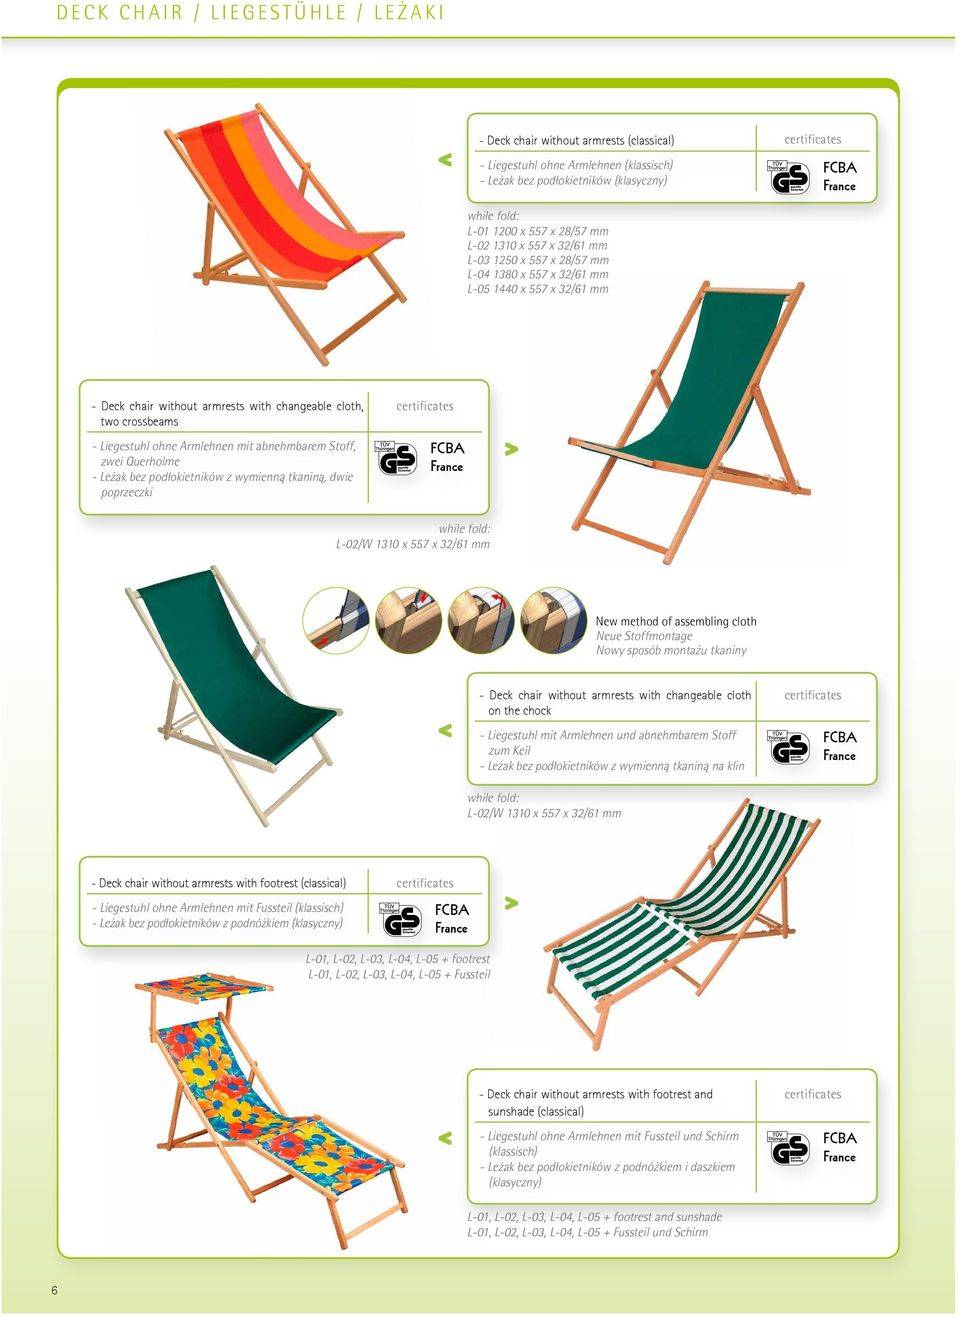 deck chair with Step 1 Instruction of assembling cloth in deck chair in deck chair with changeable cloth (new version) Deck chair without armrests with changeable cloth, two crossbeams Liegestuhl